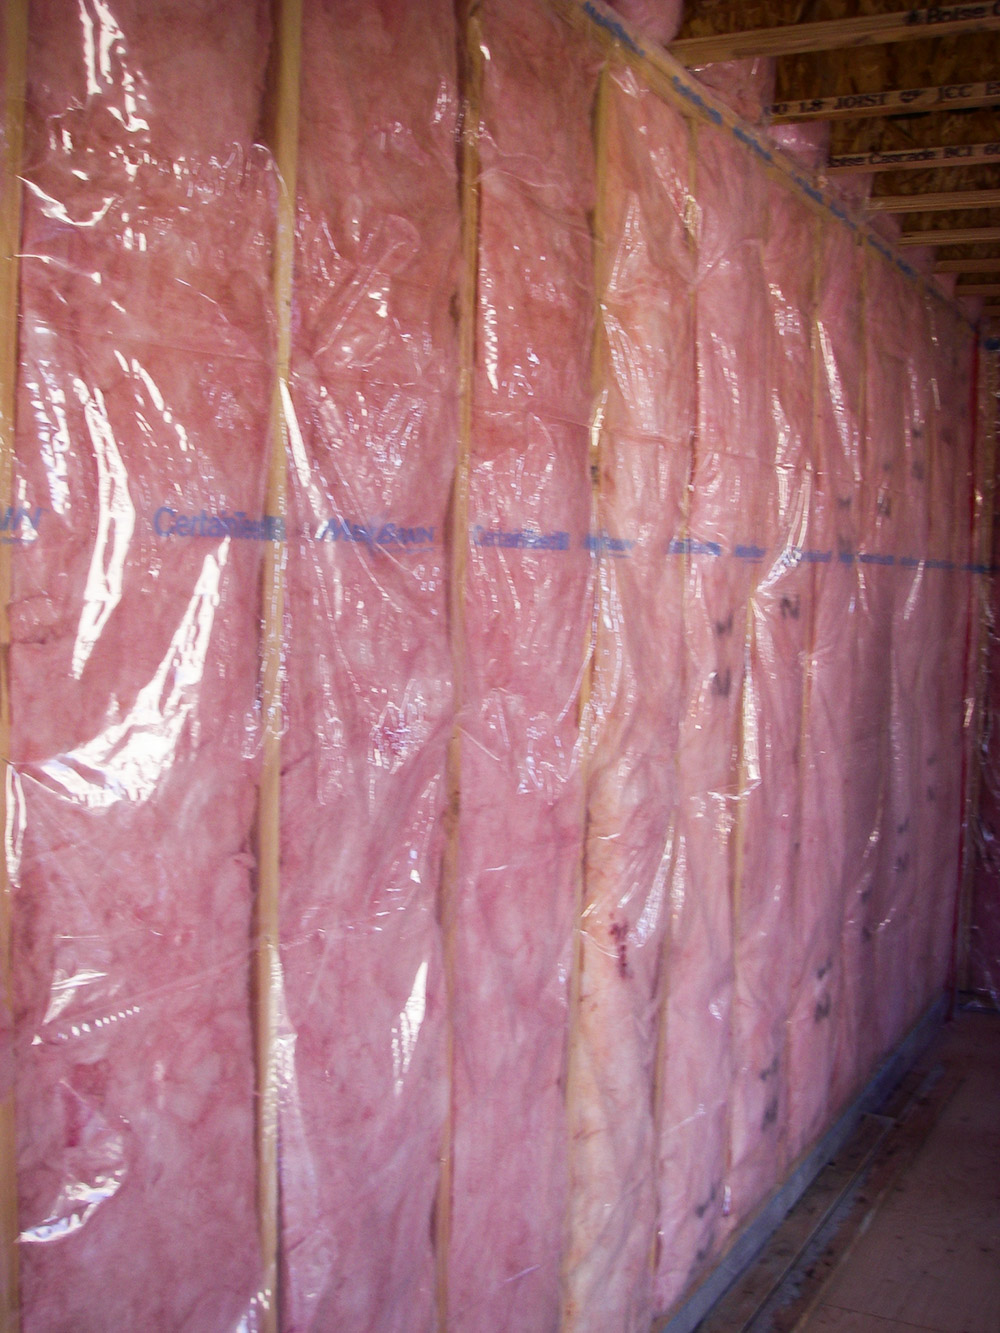 Fig. i-19 Polyamide film vapor retarder installed over a wood-framed wall with cavity batt insulation